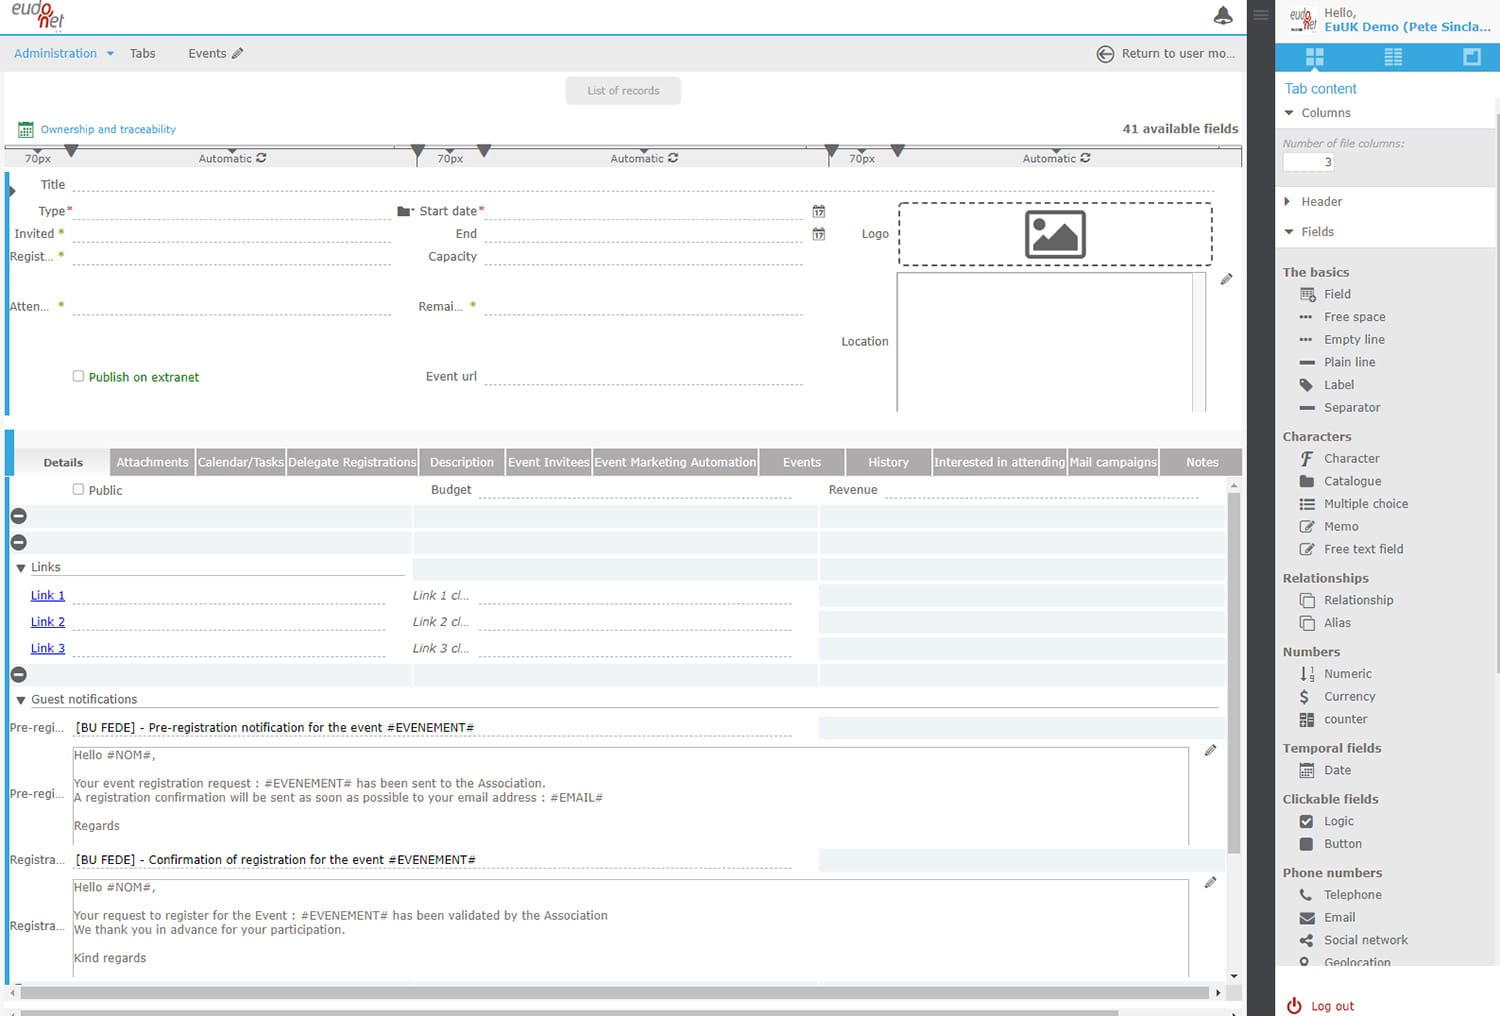 Administration interface CRM